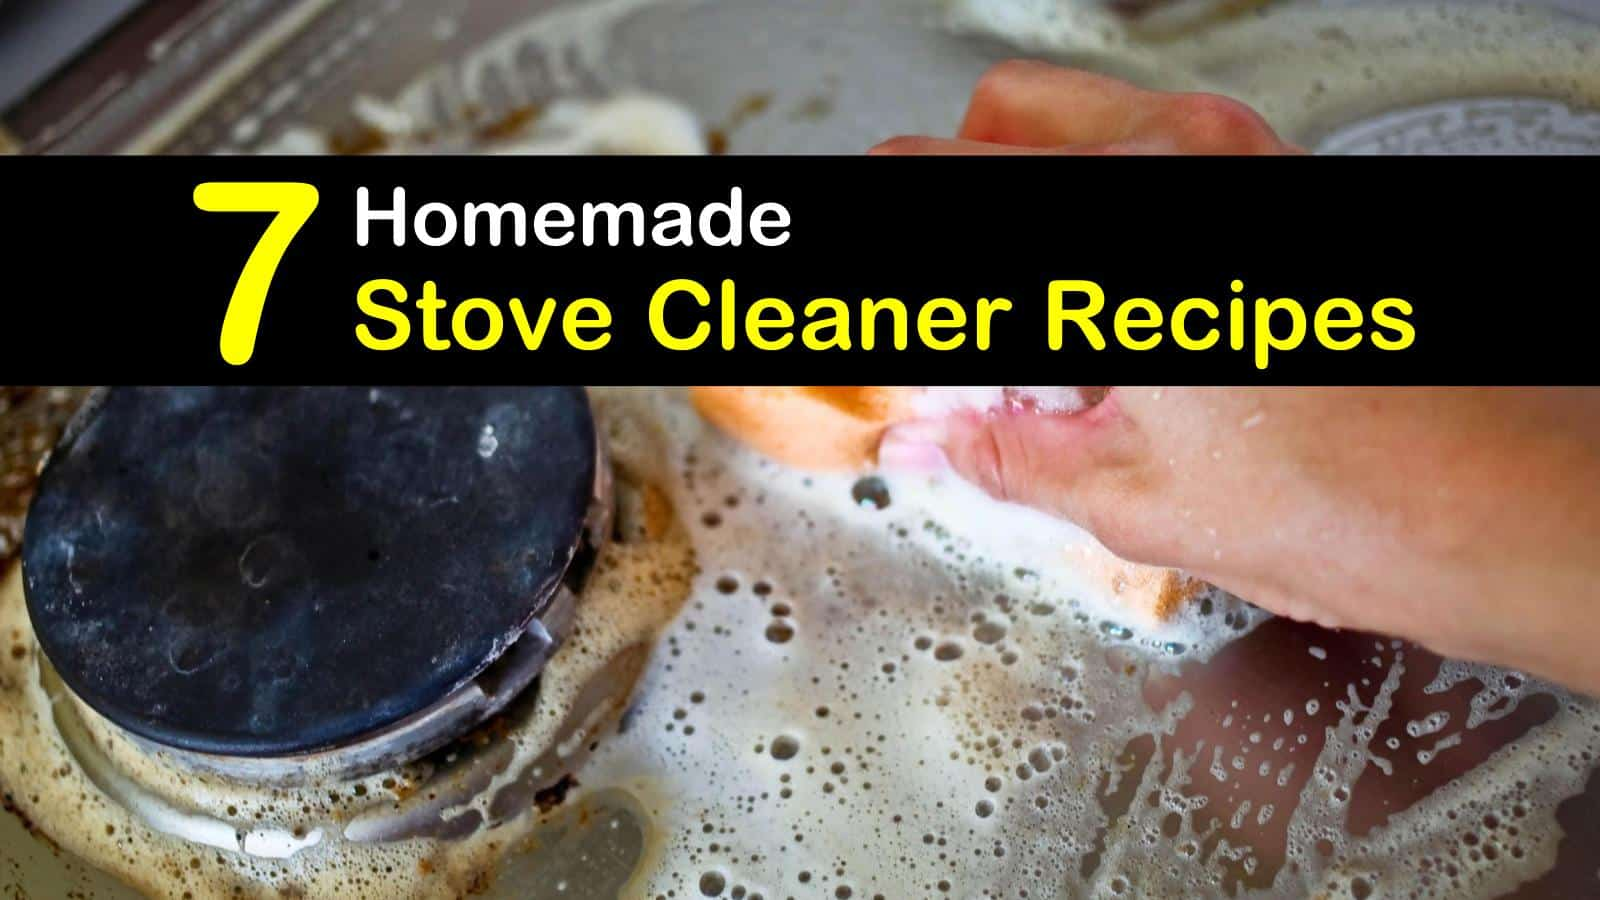 Homemade Stove Cleaner Recipes 7 Diy Tips For Cleaning Your